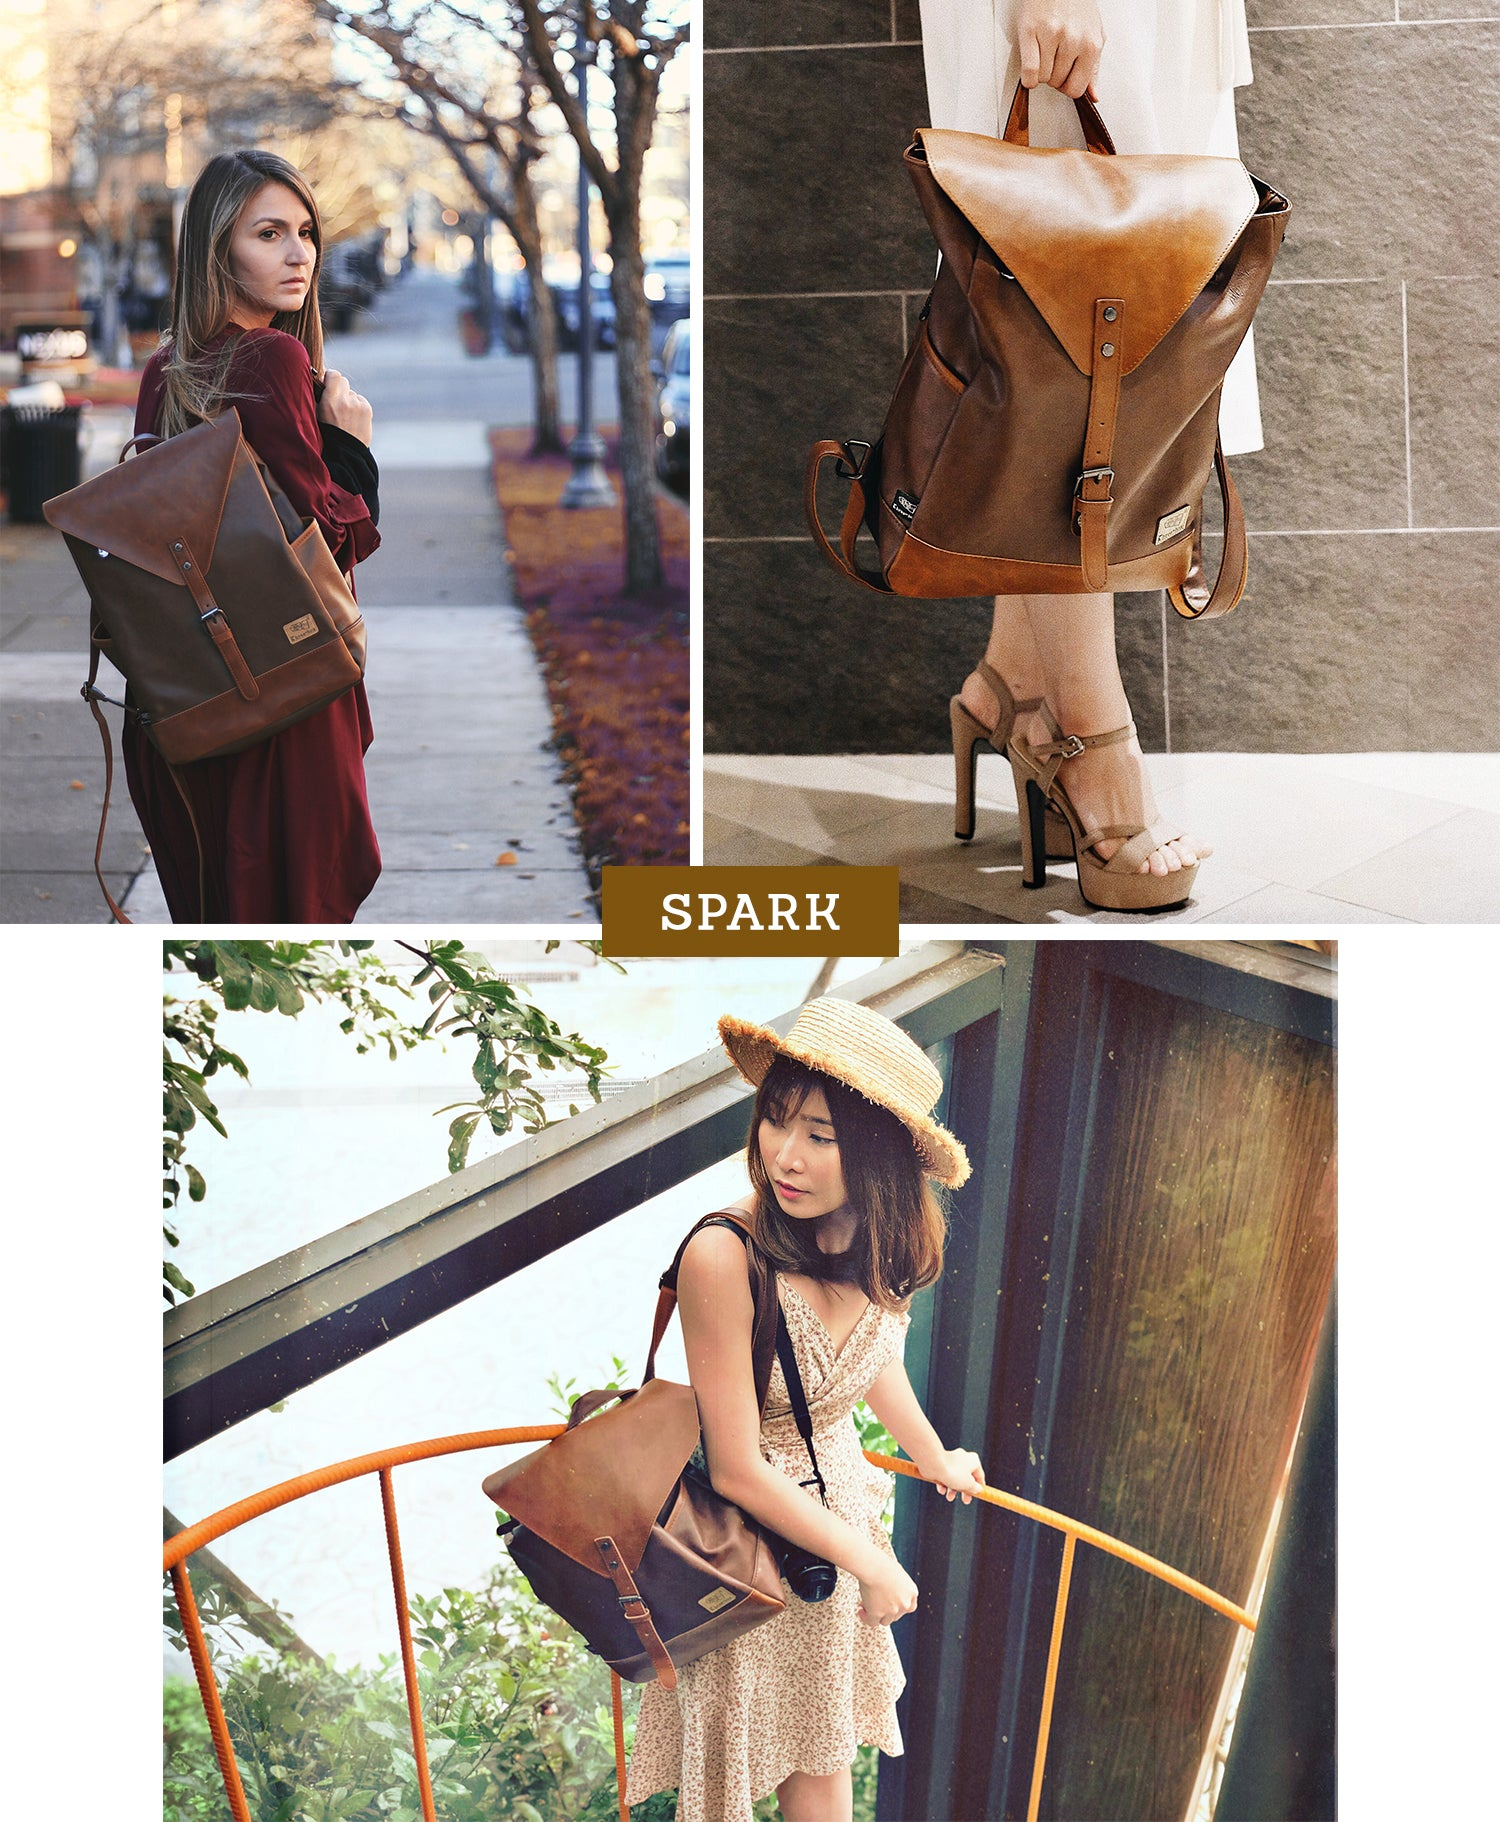 Spark Vintage Leather Backpack Lookbook